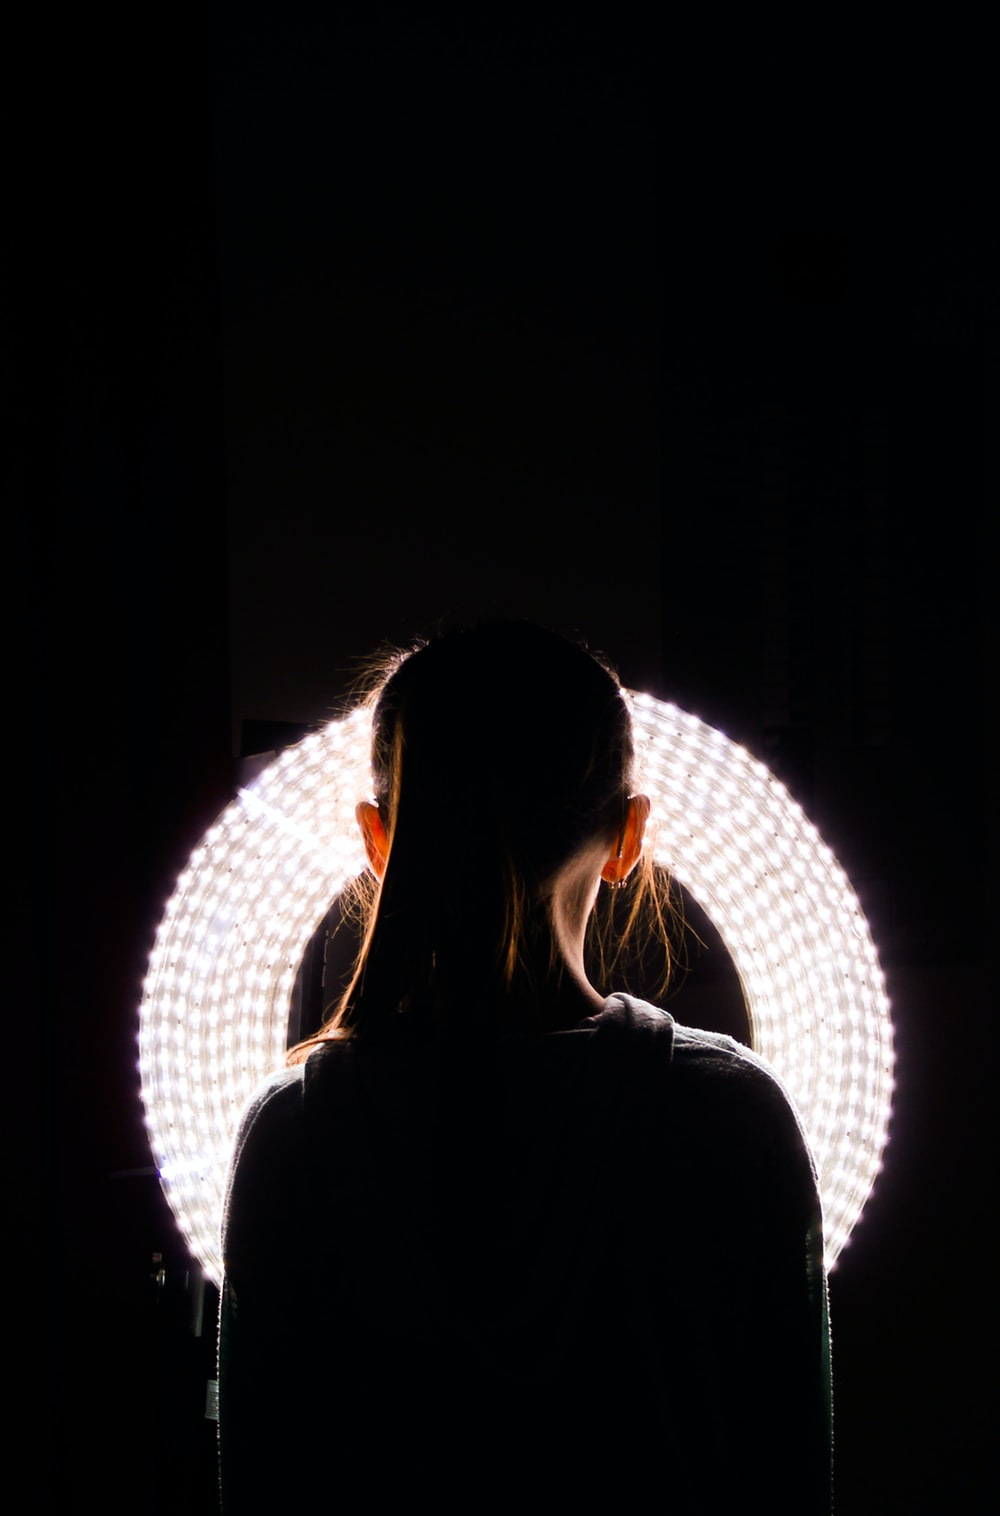 woman standing near round white vanity light